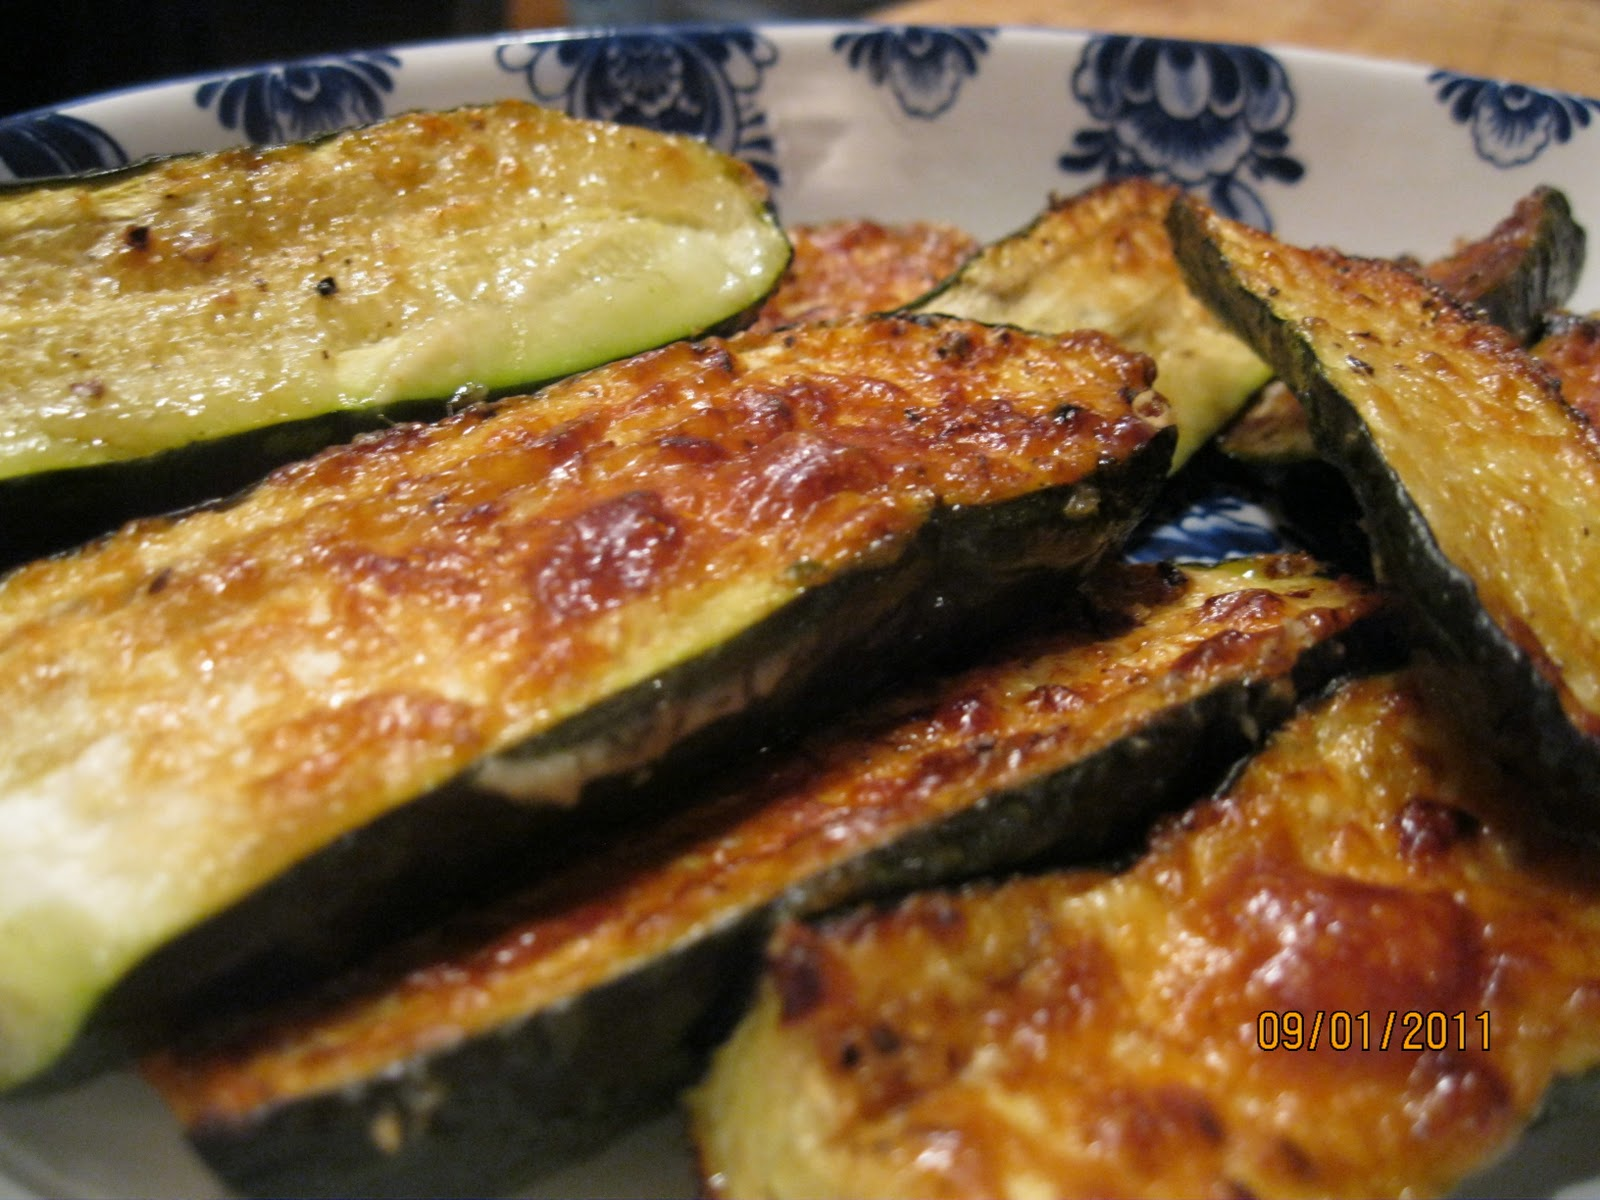 What's for dinner: Roast Parmesan zucchini (courgette)